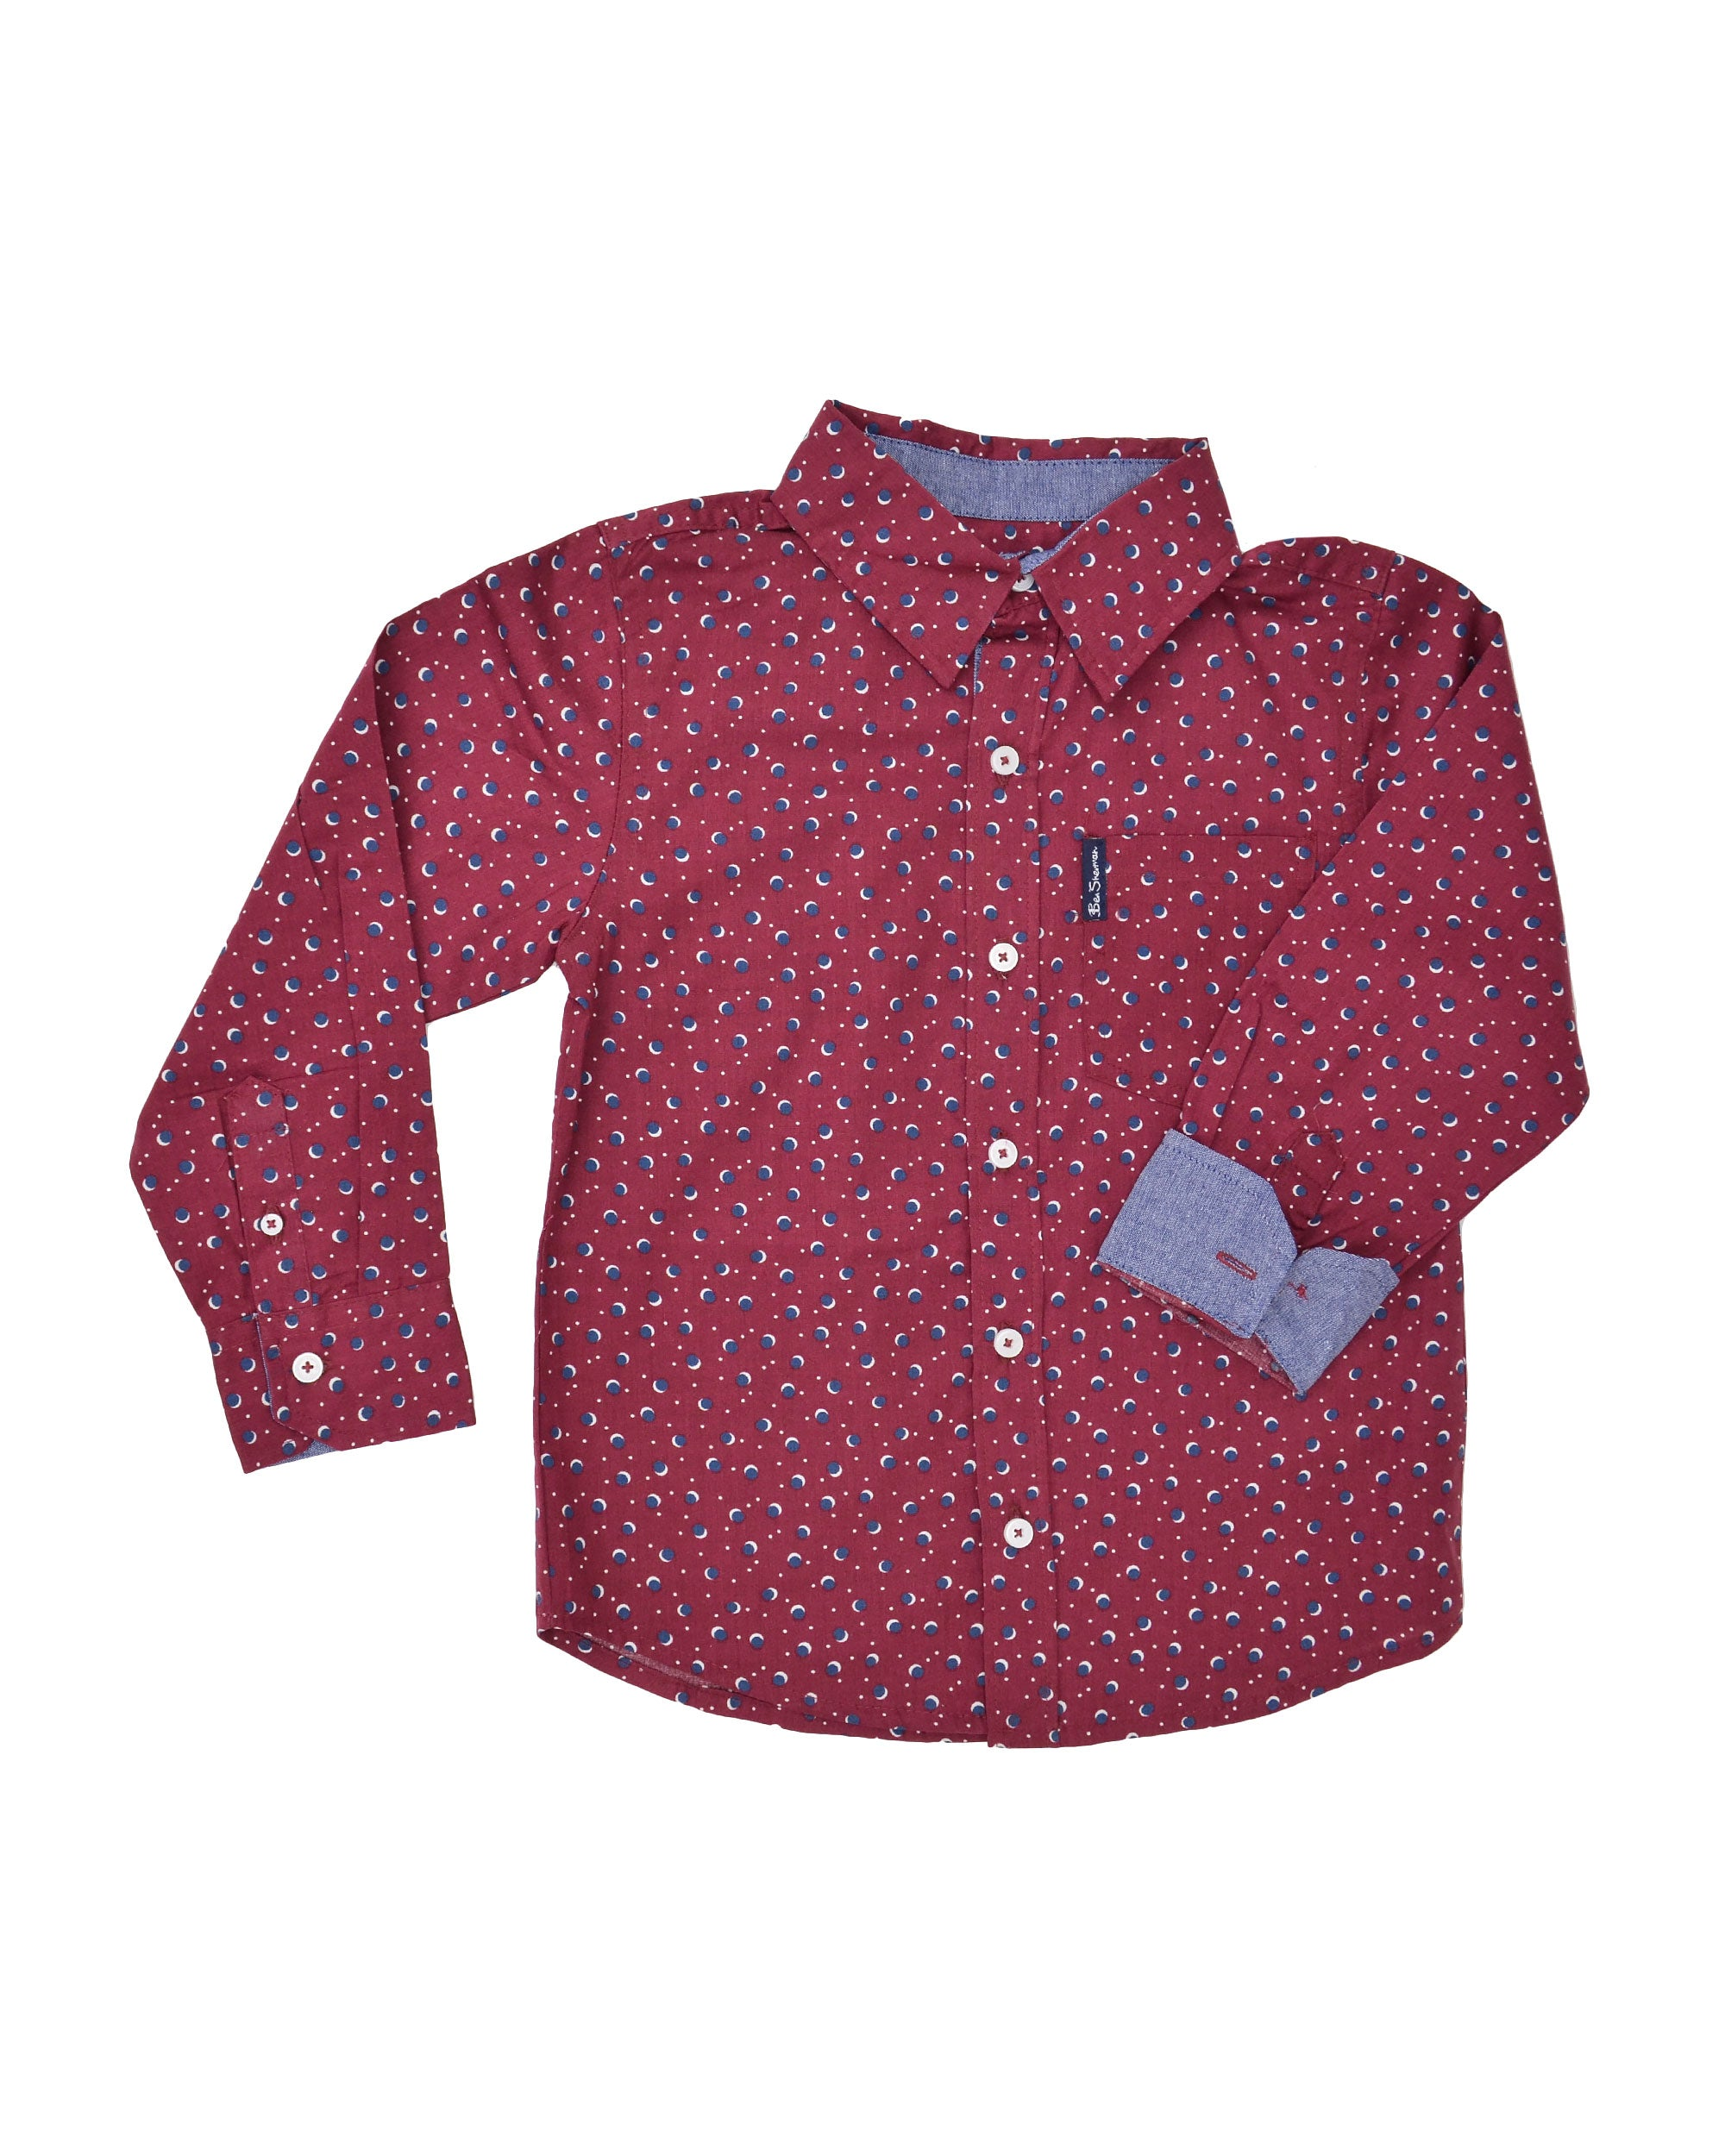 ed7c8d43f Boys' Red Button-Down Shirt with Navy Dot Pattern (Sizes 8-18) – Ben ...